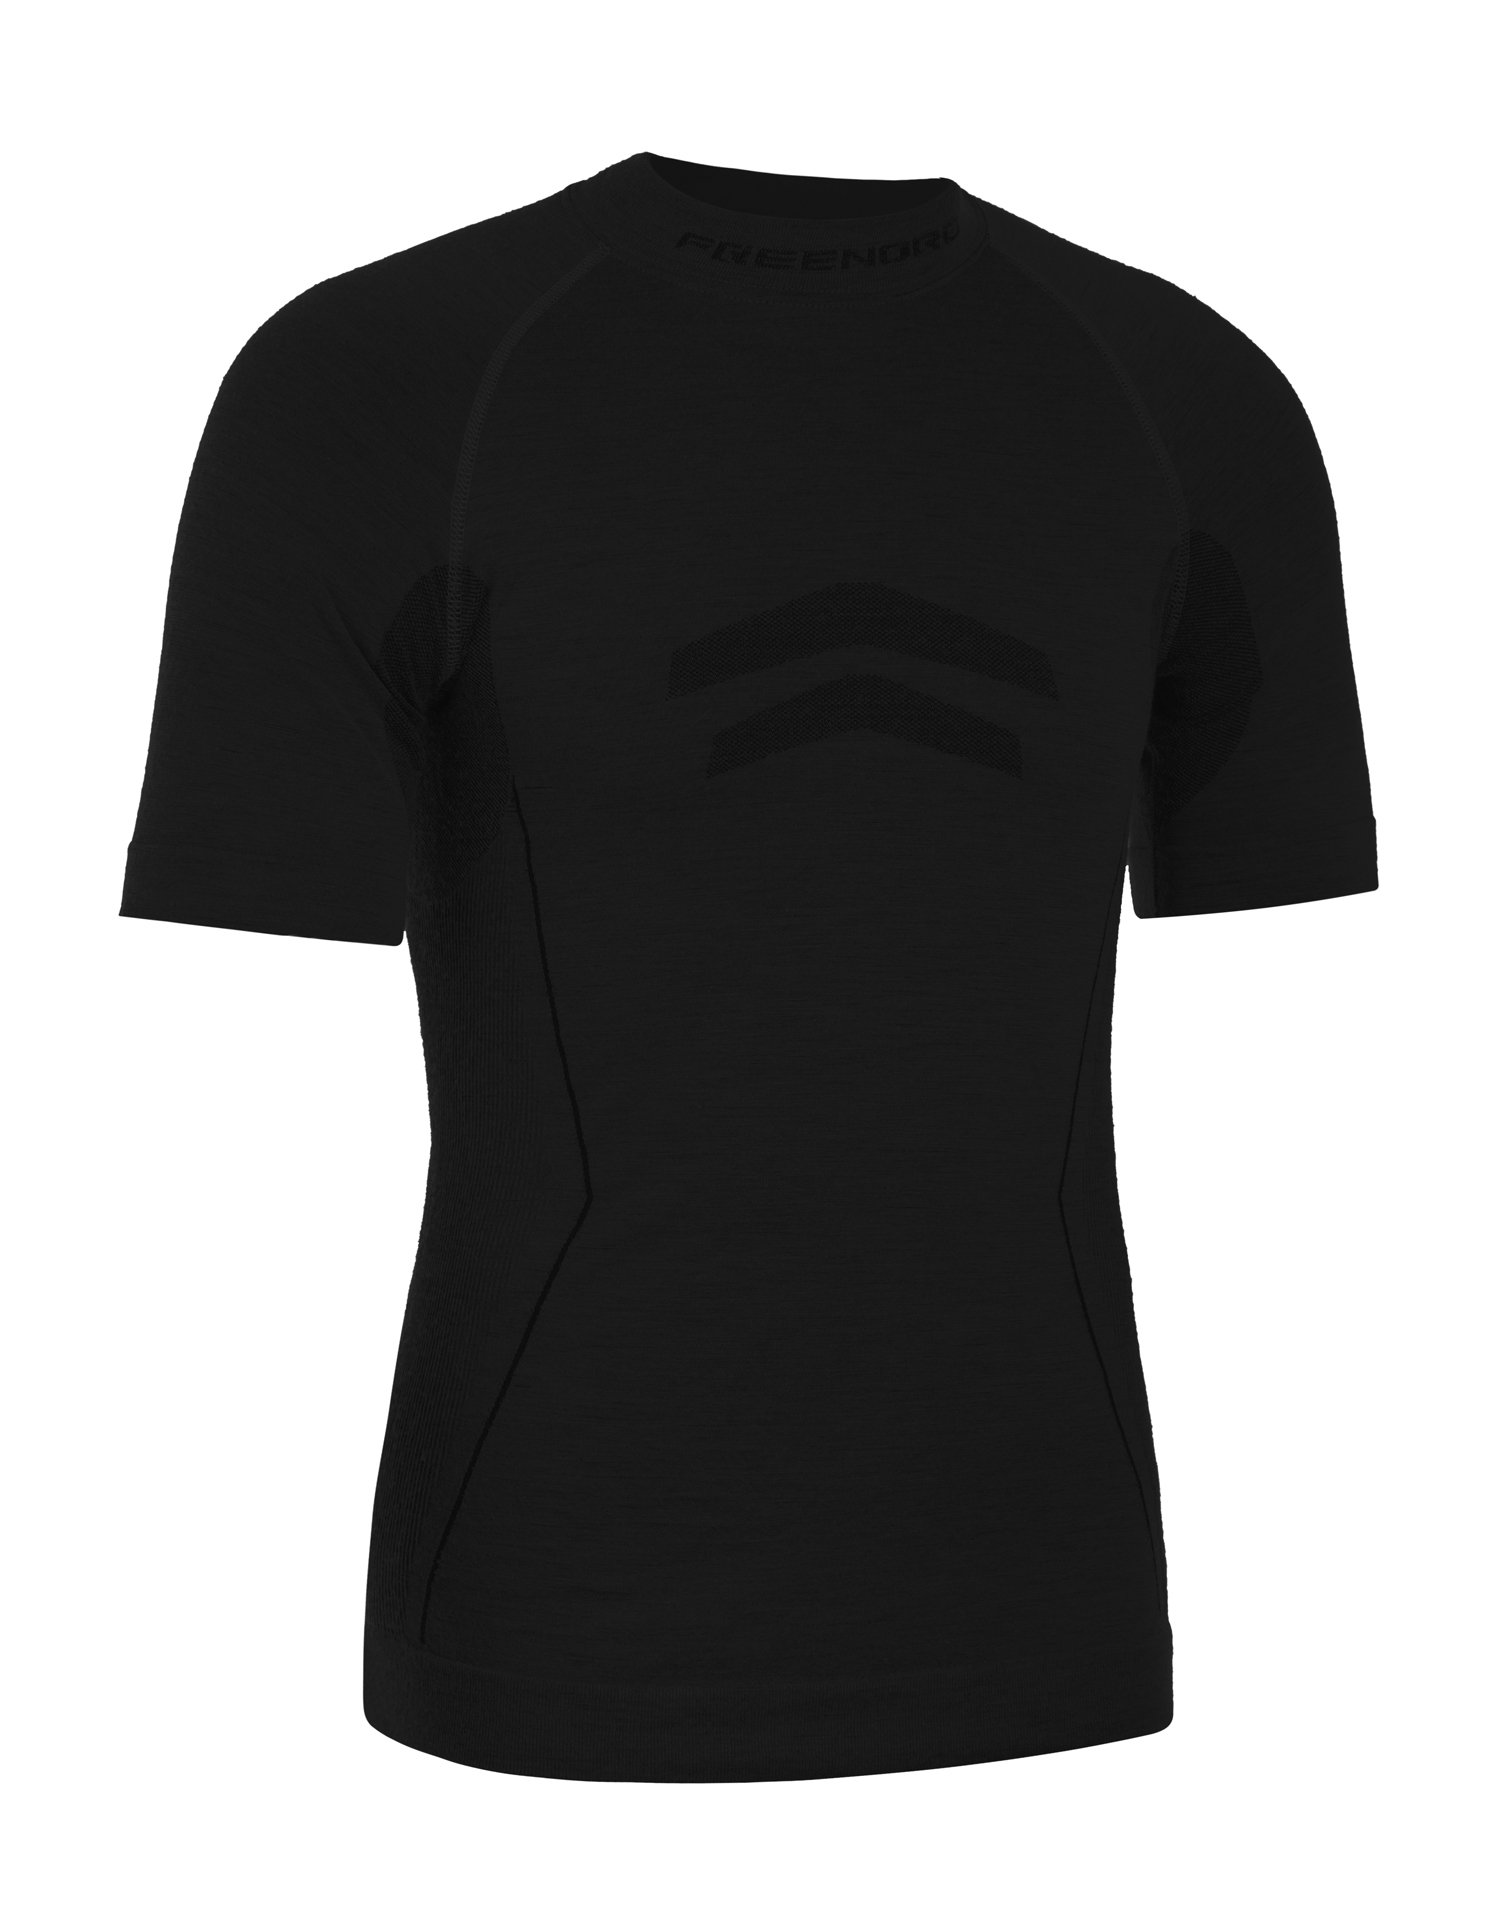 Freenord MERINOTECH Active Merino Wolle Thermoactive Fonctionnel Unterwäsche Kurzarm-T-Shirt